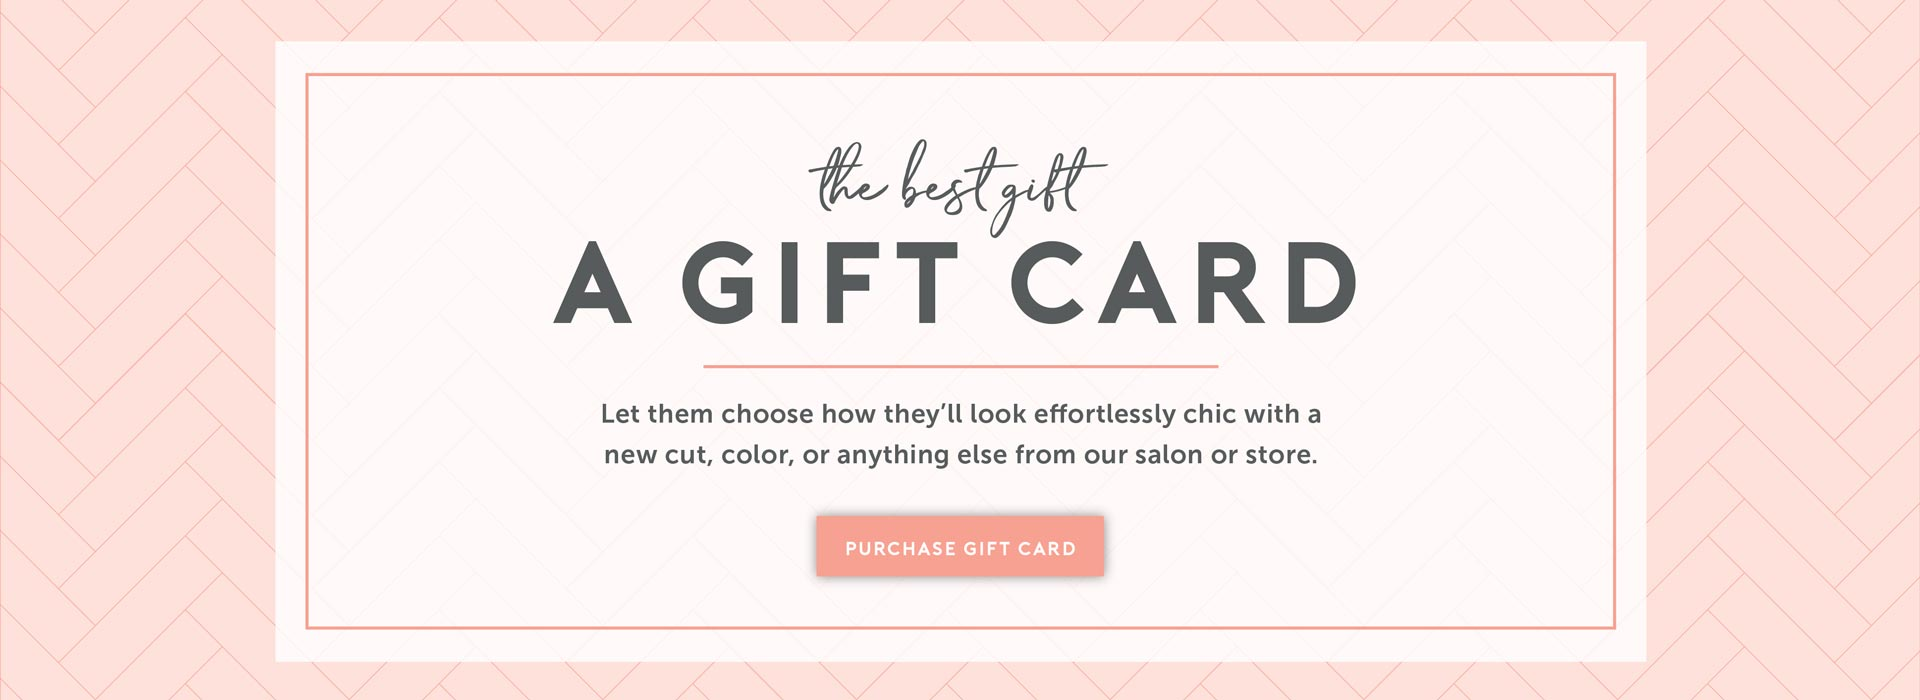 The best gift. A gift card. Let them choose how they'll look effortlessly chic with a new cut, color, or anything else from our salon or store. Click to purchase Charles Ifergan gift cards.